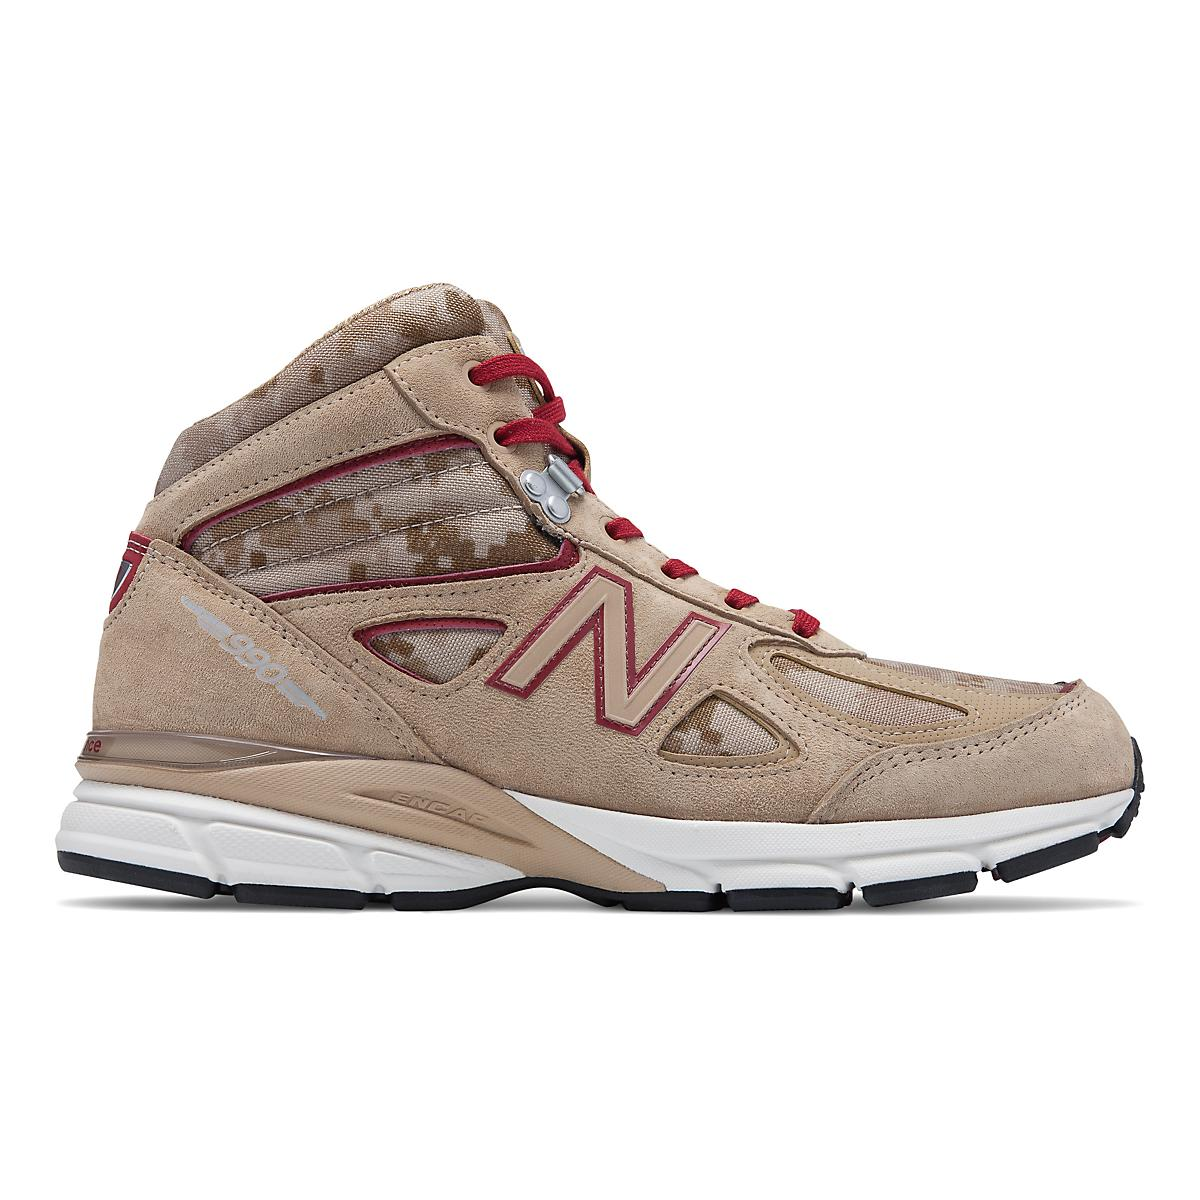 timeless design 09c85 b7afa Men's 990v4 Mid